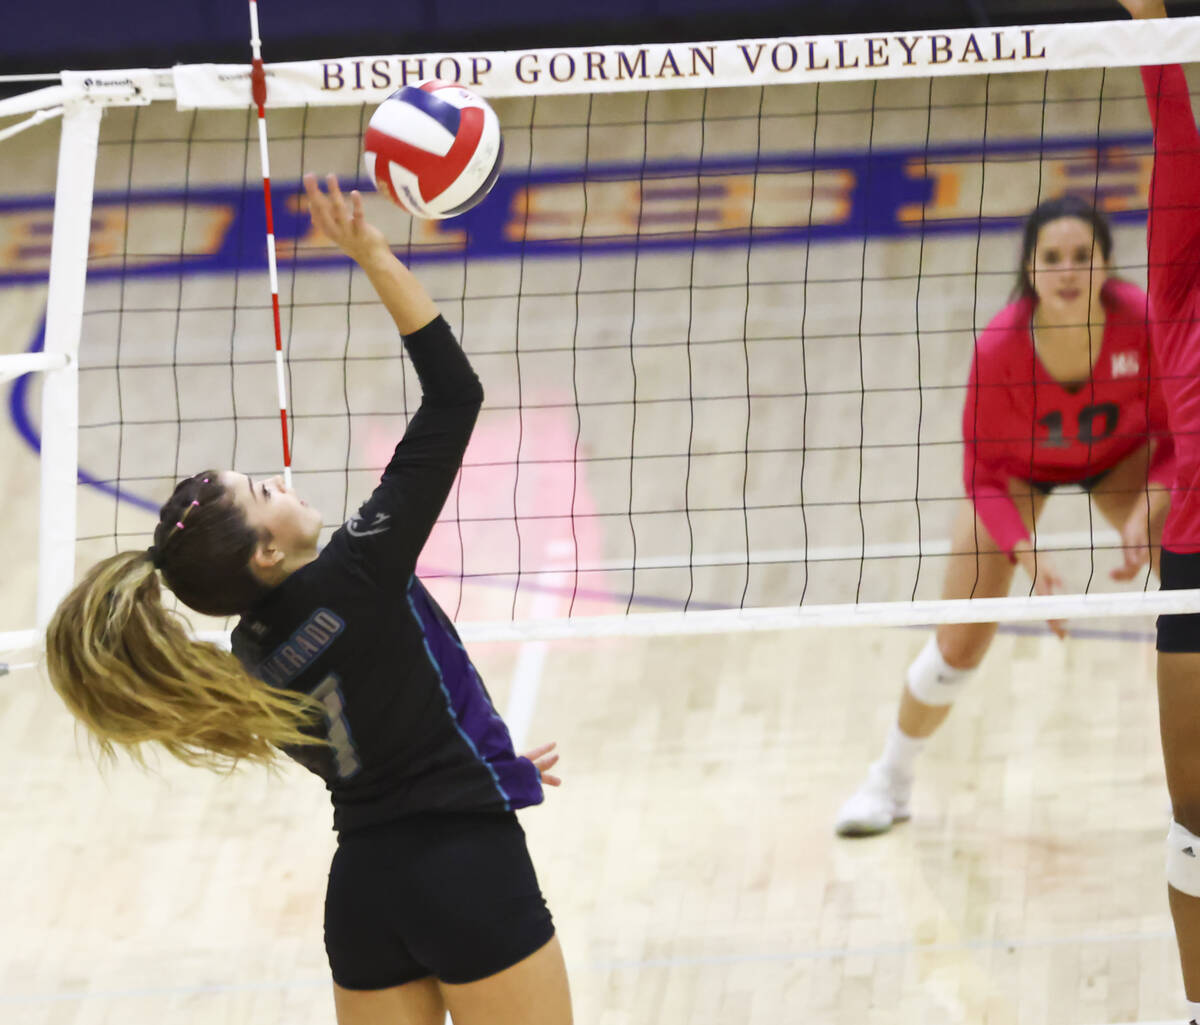 Silverado's Roxy Christensen (7) hits the ball during a volleyball game at Bishop Gorman High S ...